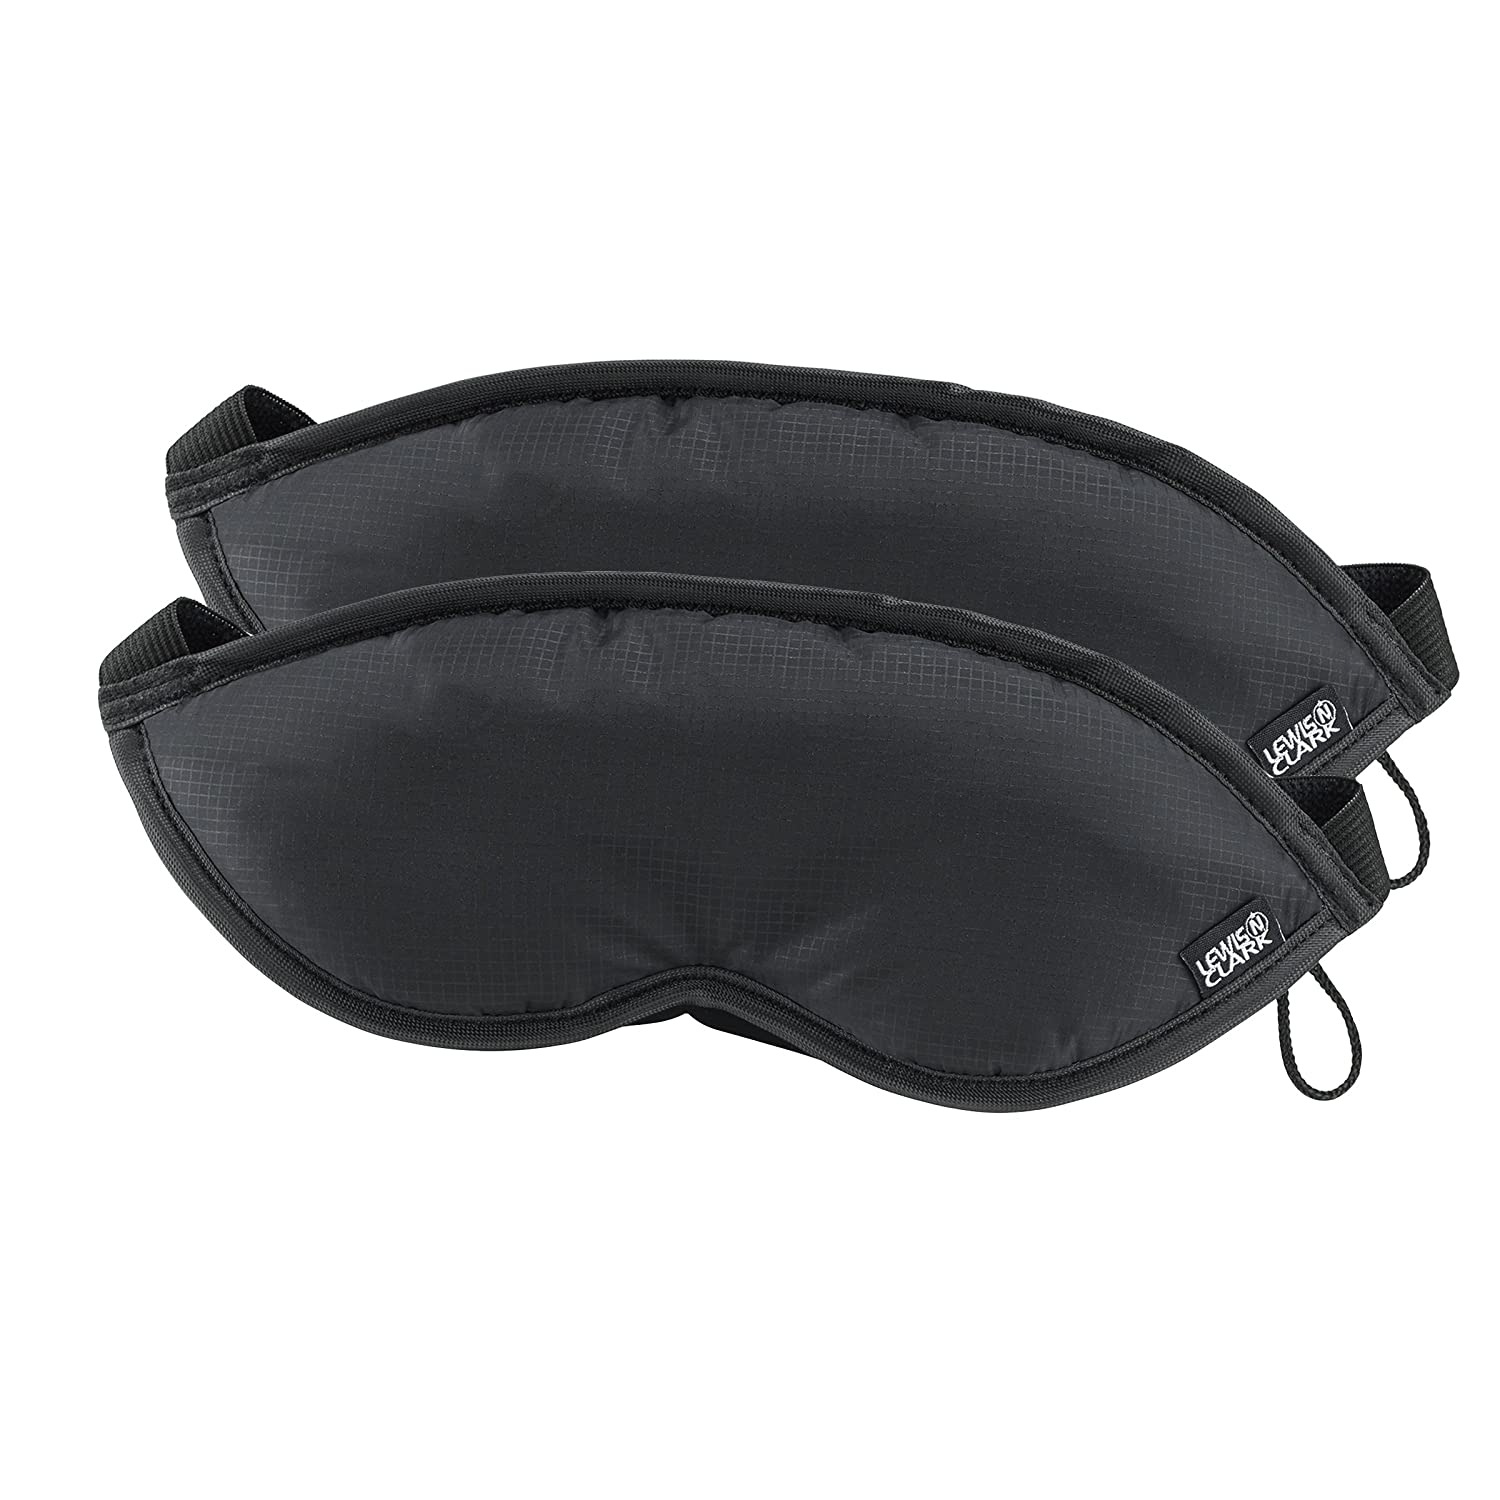 Comfort Eye Mask With Adjustable Straps Blocks Out All Light, Black, One Size Lewis N. Clark 505blkx2